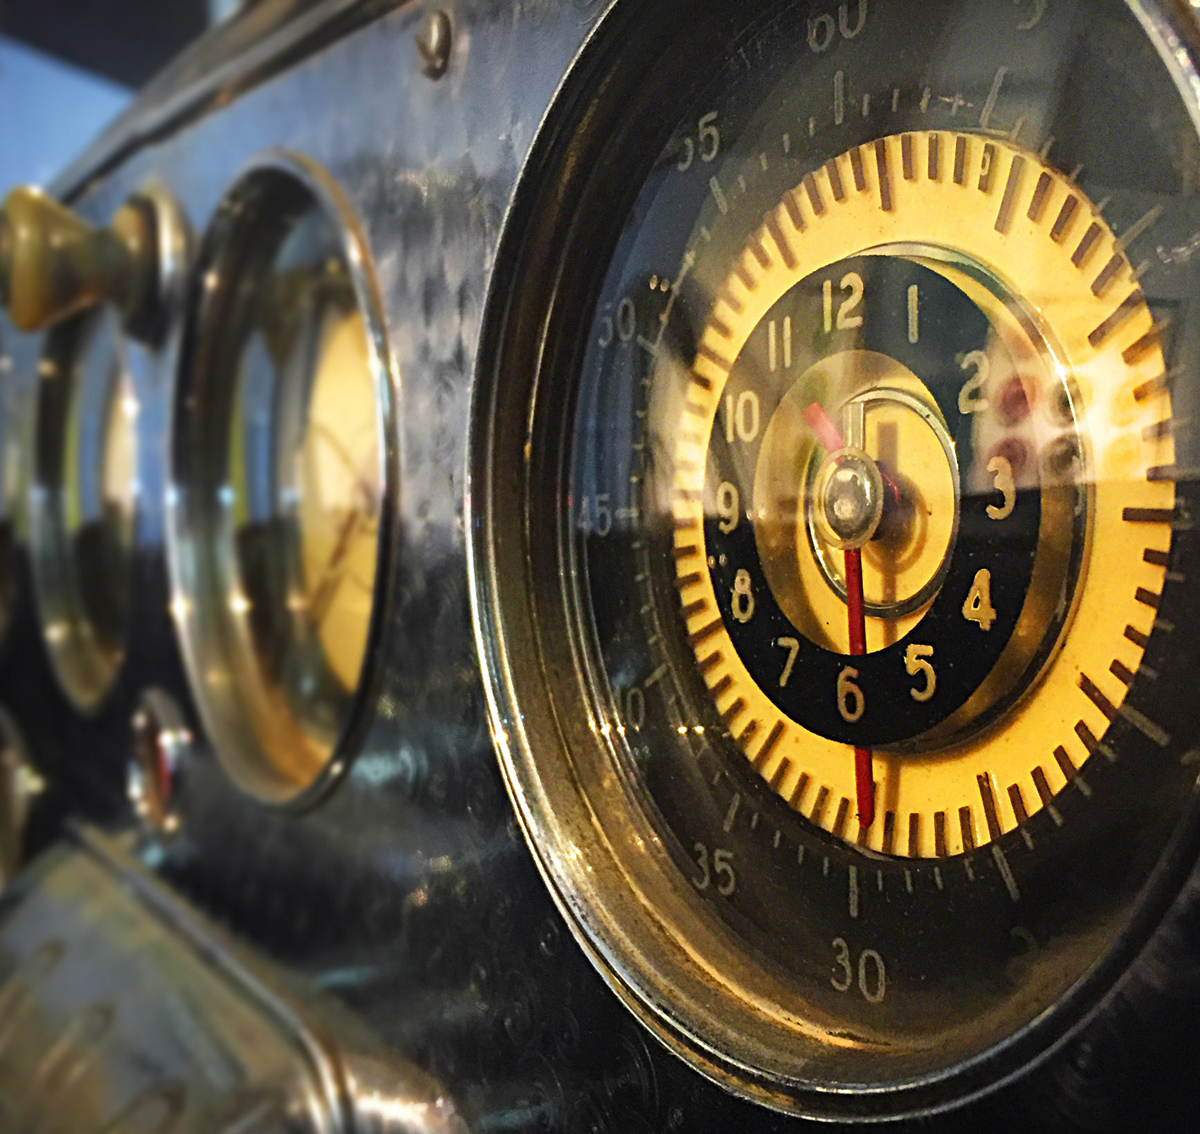 Classic Car Dash Instruments, Malaga Car Museum, Malaga, Photography